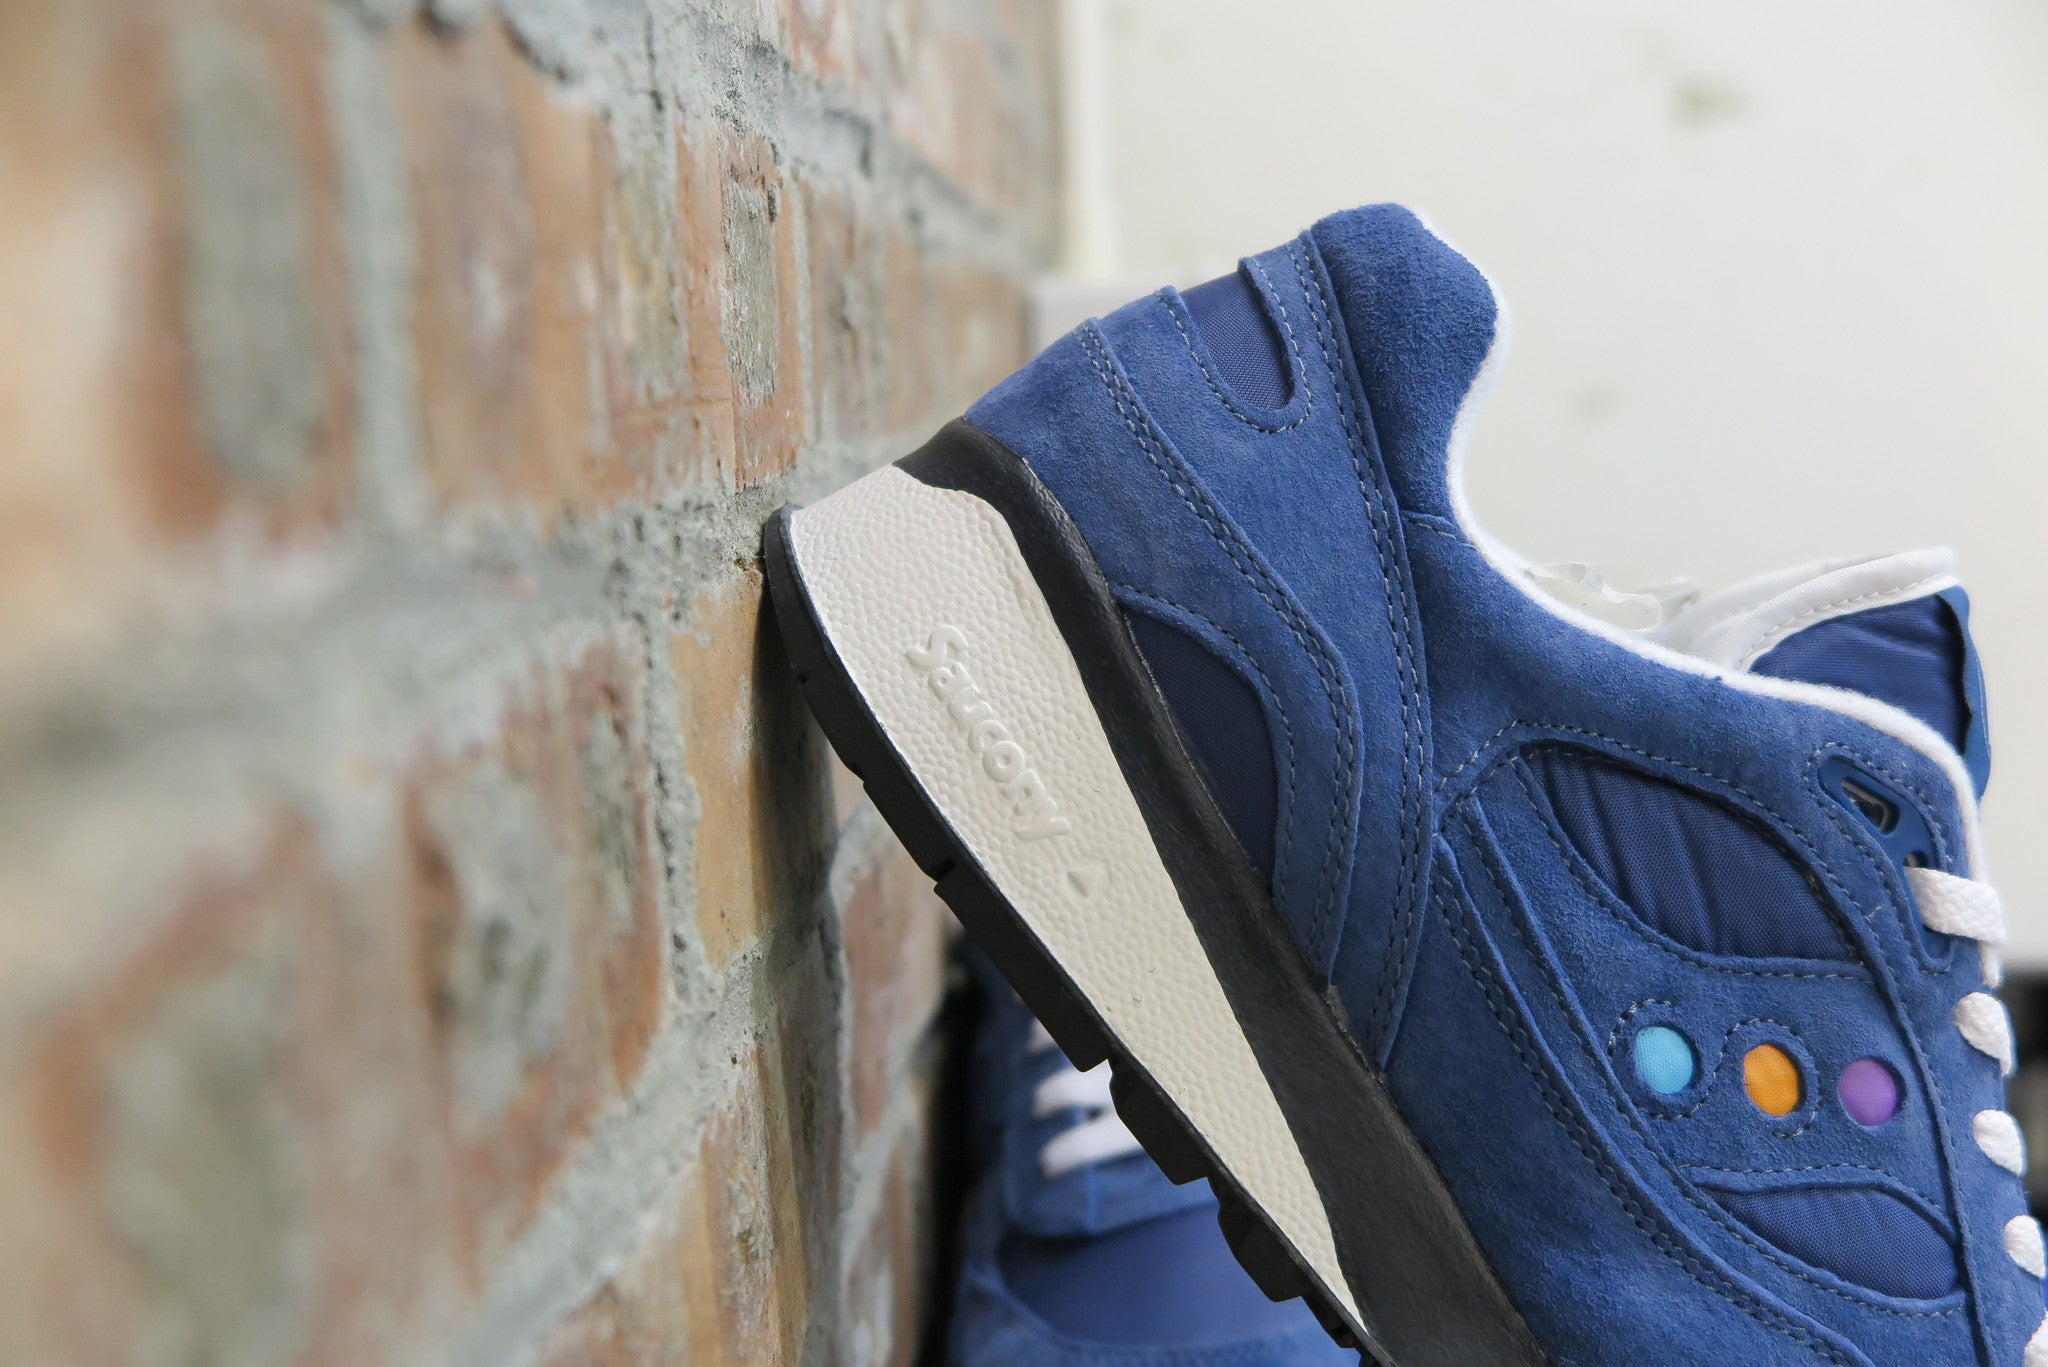 Babochka x Saucony Shadow 6000 in Blue #S70152-1 ****Rare****-Sneakers-Navy Selected Shop